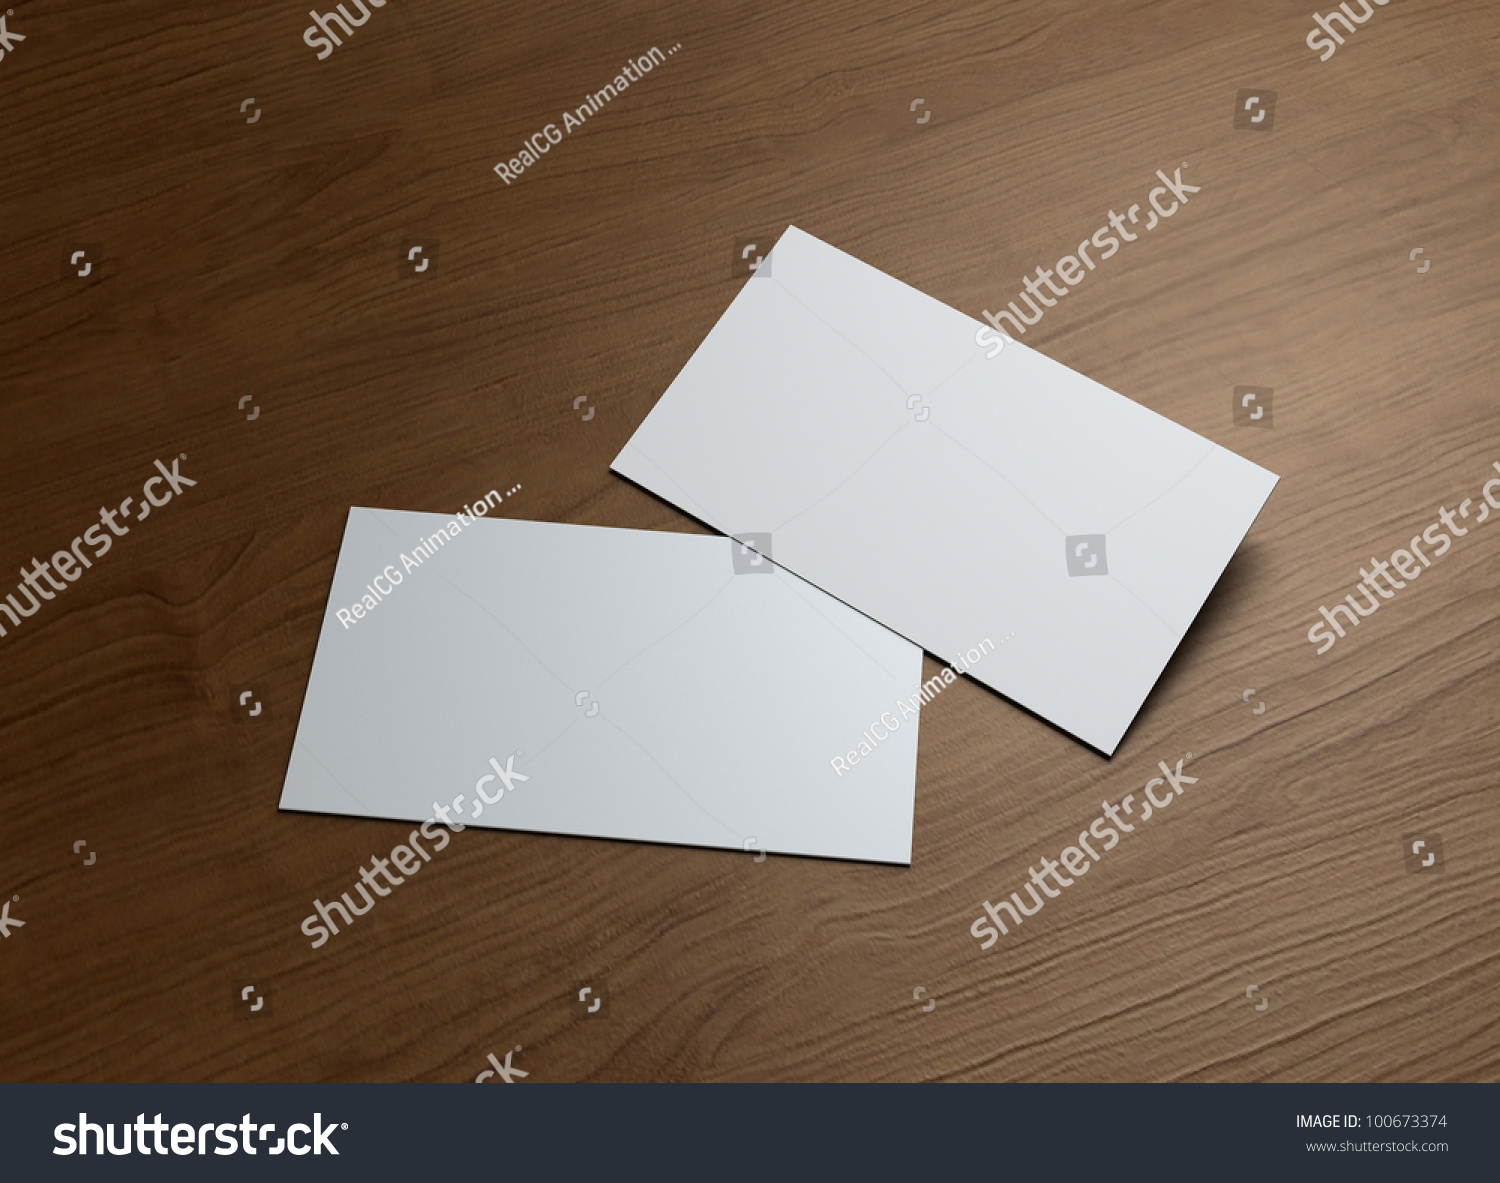 Formal Style Business Cards Presentation Corporate Stock ...